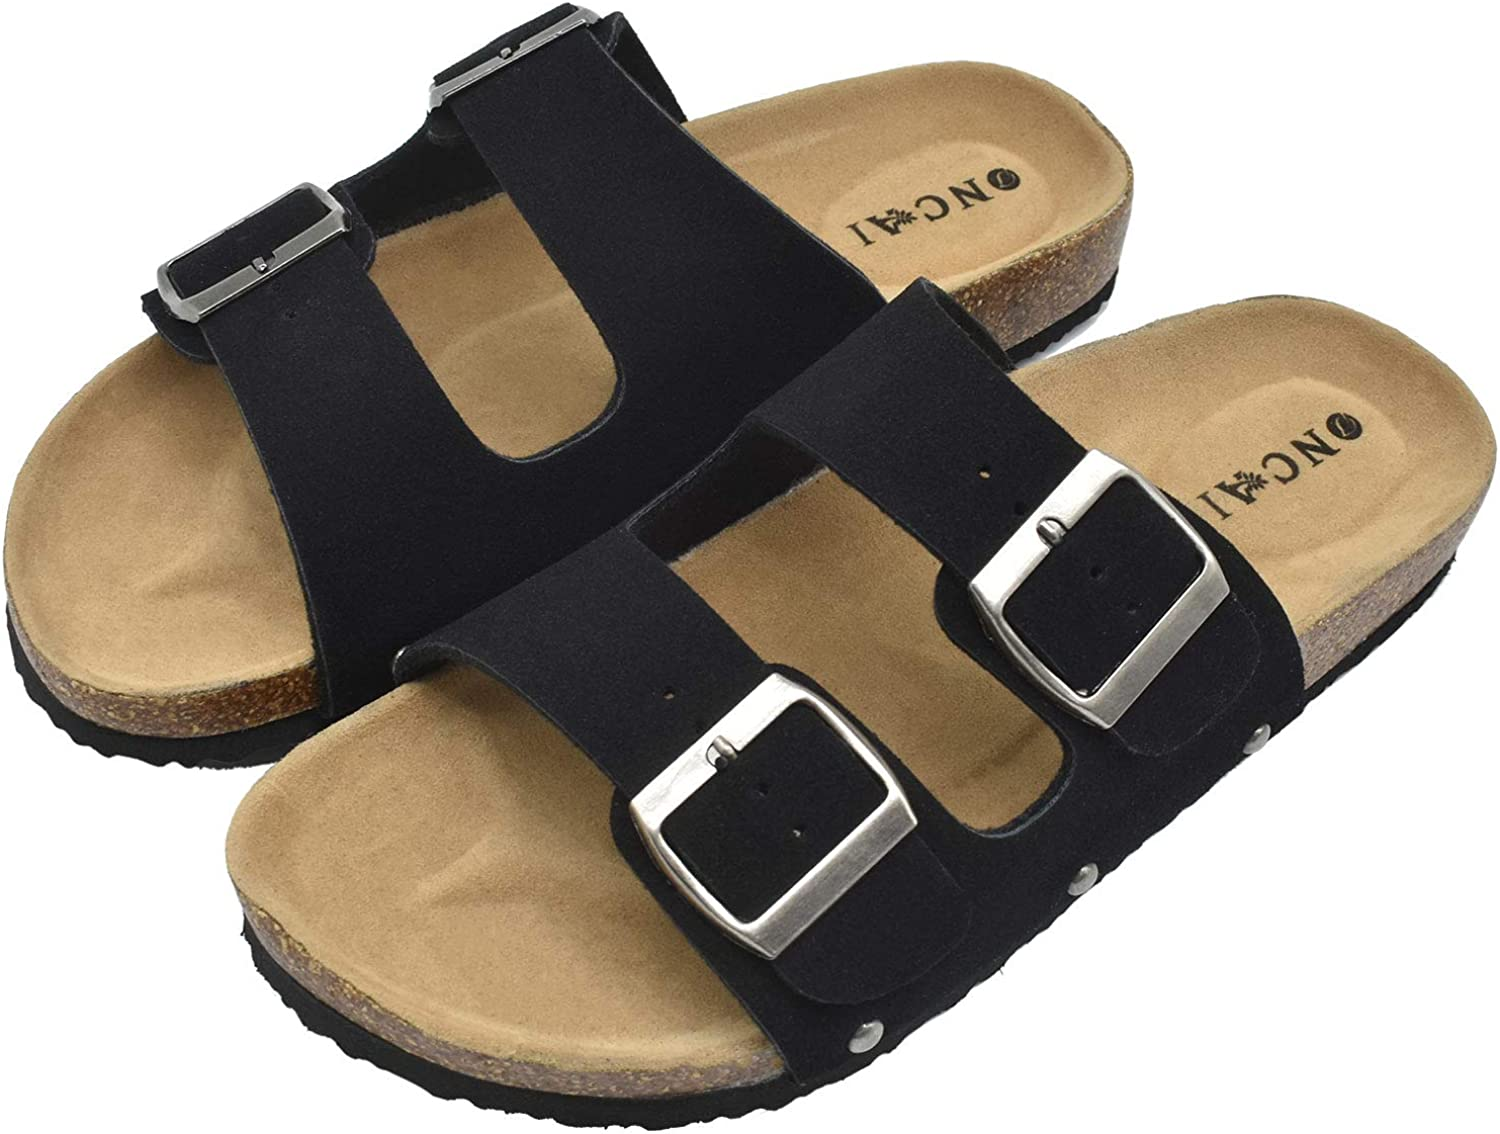 Womens Flat Slide Sandals with Arch